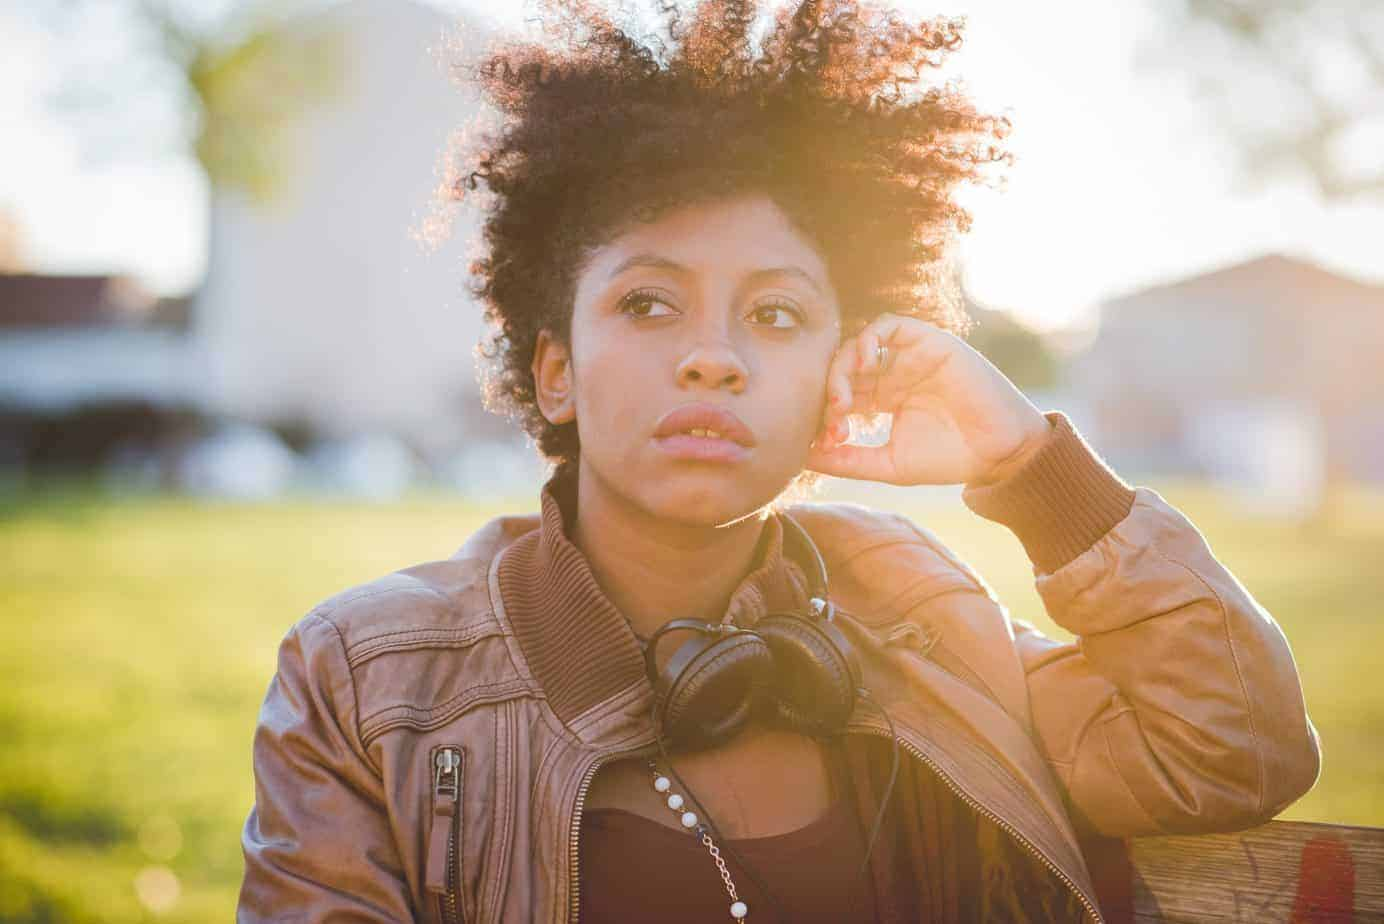 Black girl wearing brown leather jacket with curly hair, standing outside in the sunlight leaning on a fence post.